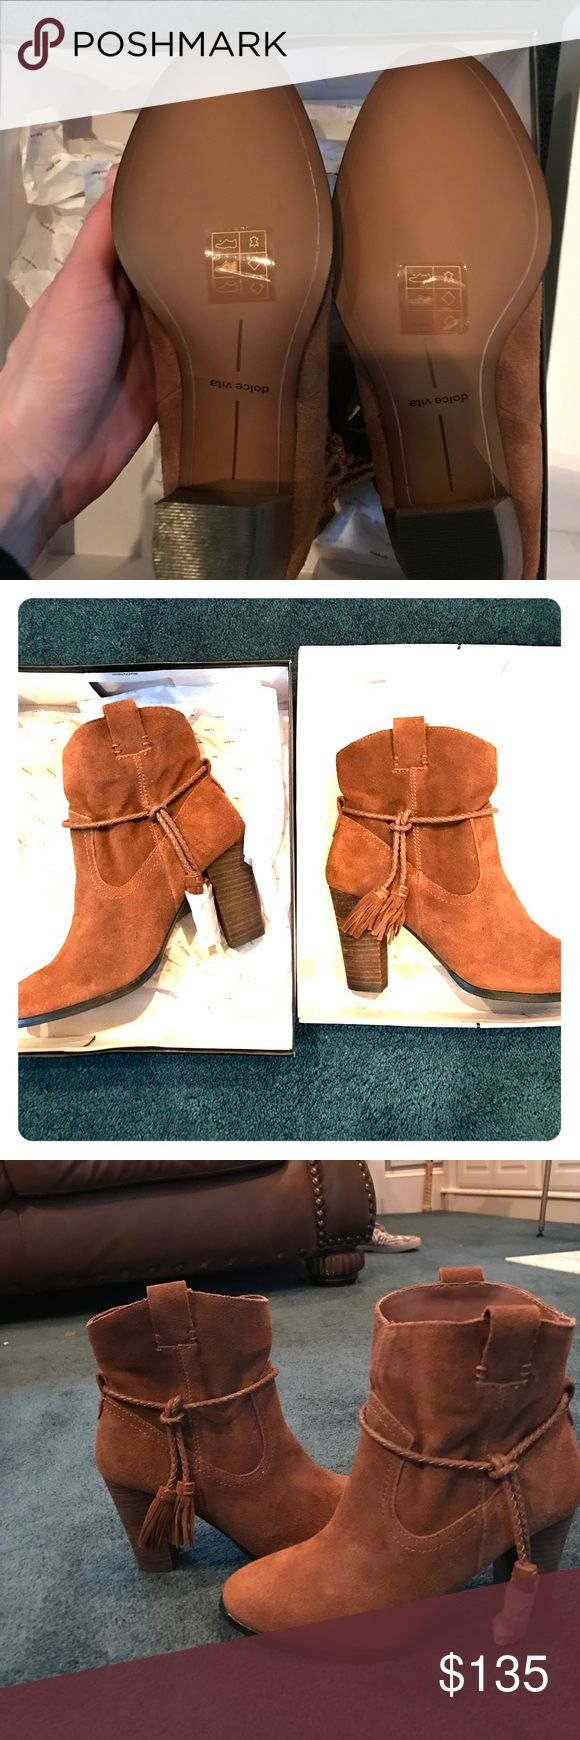 NIB Dolce Vira MELAH Bootie 7.5 SUEDE I love Dolce Vita & their booties are amazing. They're comfortable and very stylish. These are no exception! The style is 'Melah' and they're new, never worn. They're chestnut suede and slip on. Please note these are priced considerably lower than what I paid just 2 months ago, I DO NOT ACCEPT TRADES... & I don't work outside Posh. If you want to make an offer, simply use the offer option. I will be listing a lot of great things within the next few days…